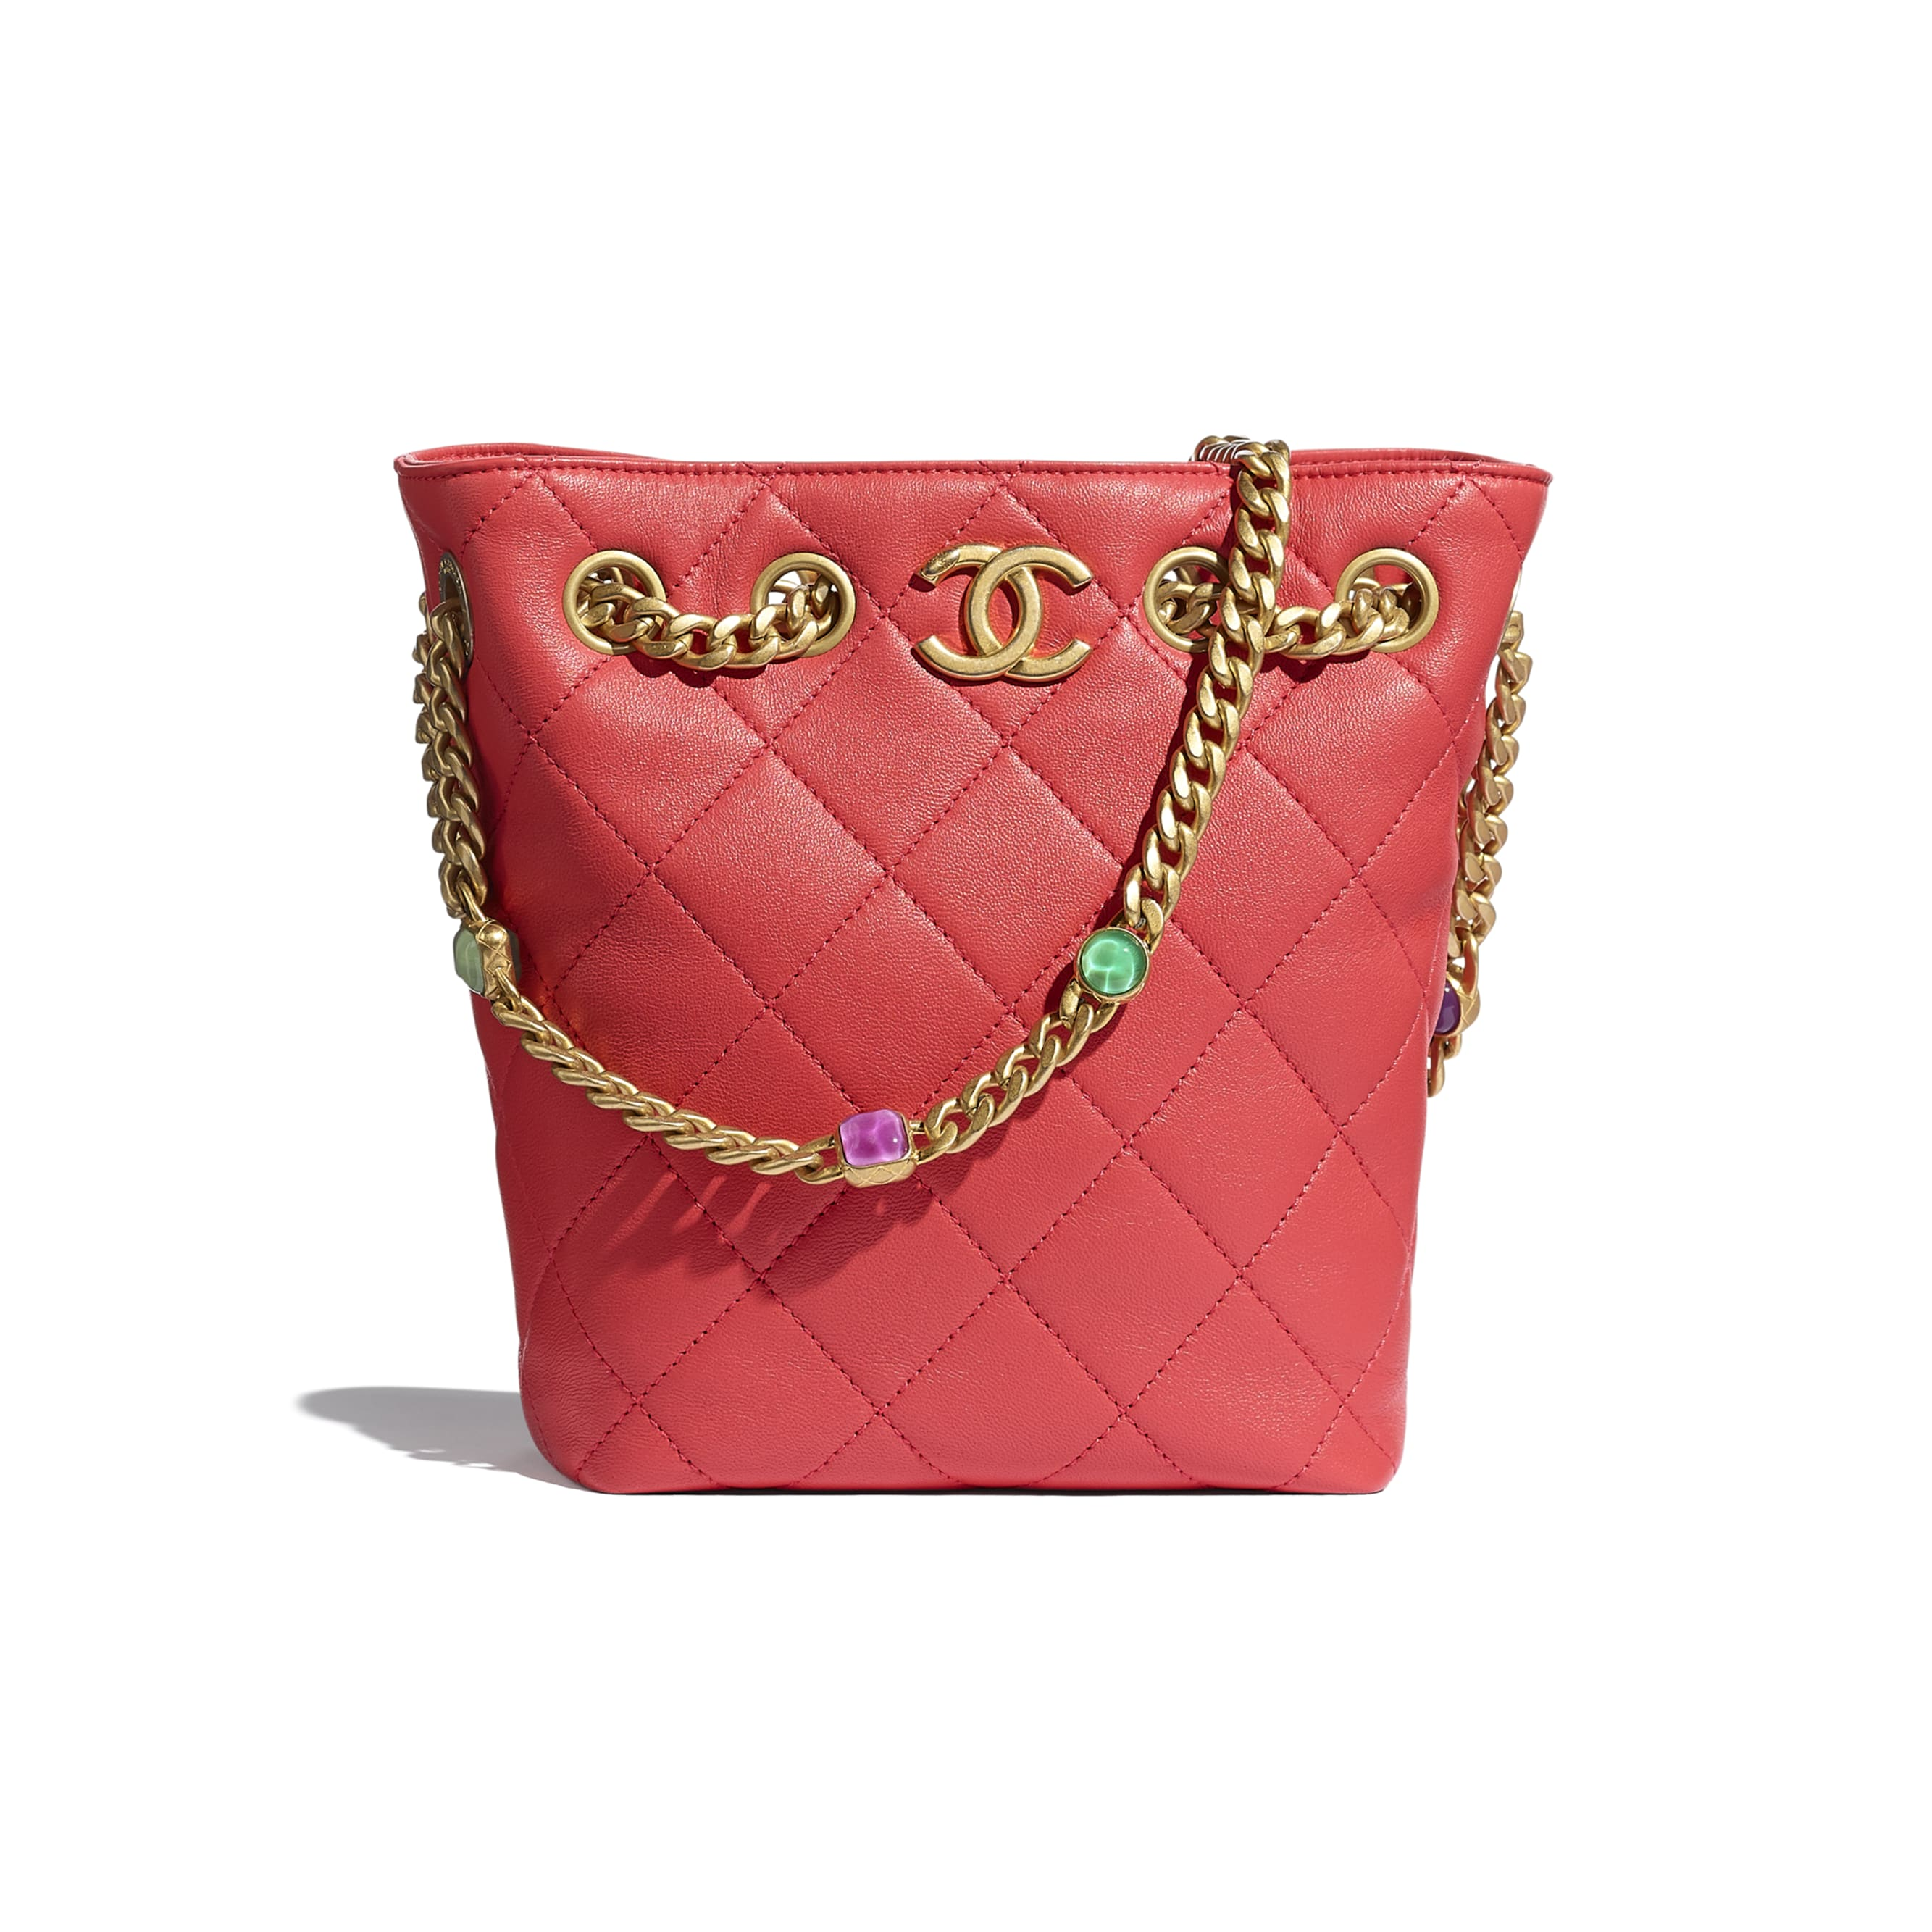 Drawstring Bag - Red - Lambskin, Resin & Gold-Tone Metal - CHANEL - Default view - see standard sized version